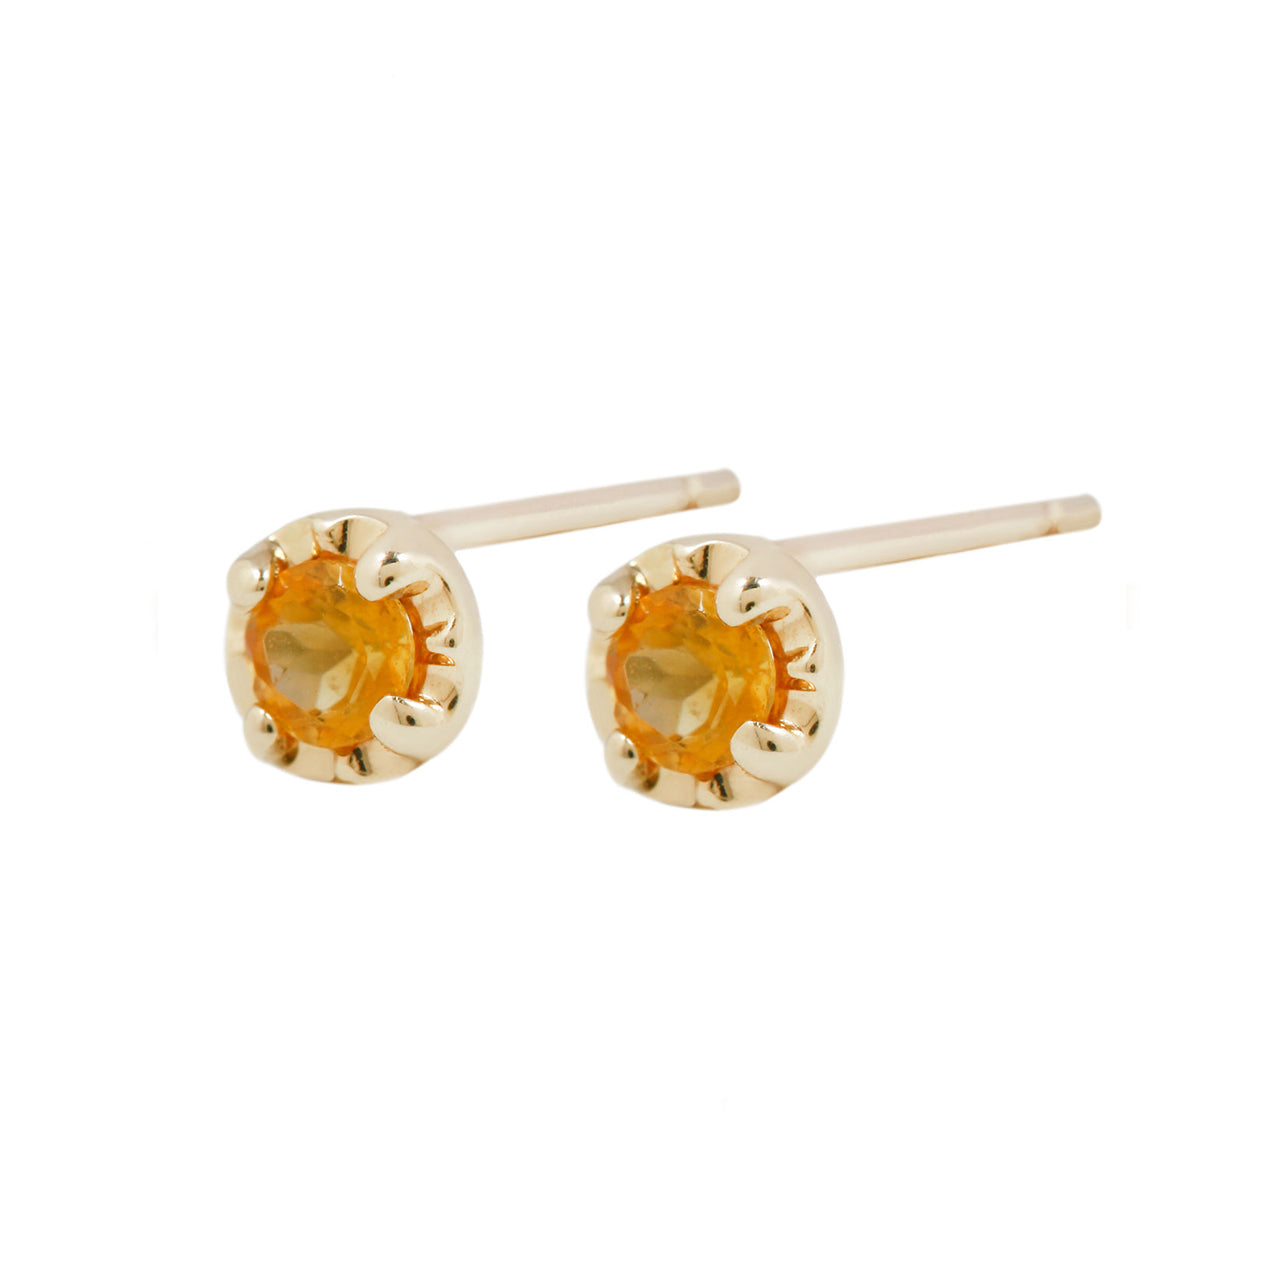 Citrine prong studs